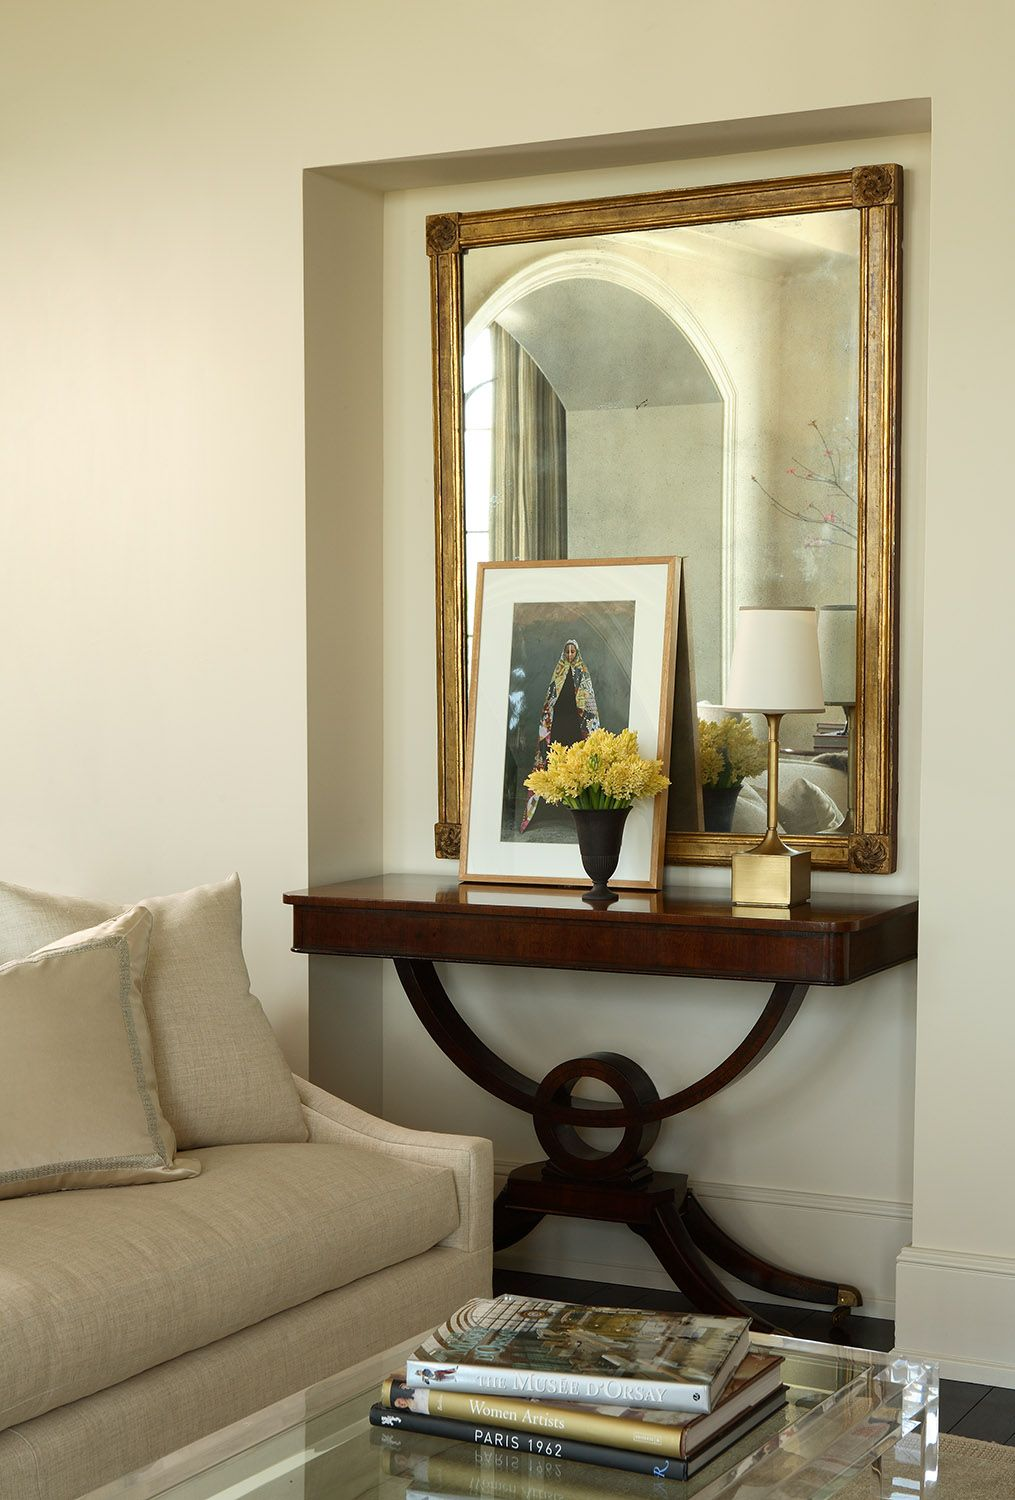 Art propped up in front of a mirror is such a lovely way to display it robert brown interior design